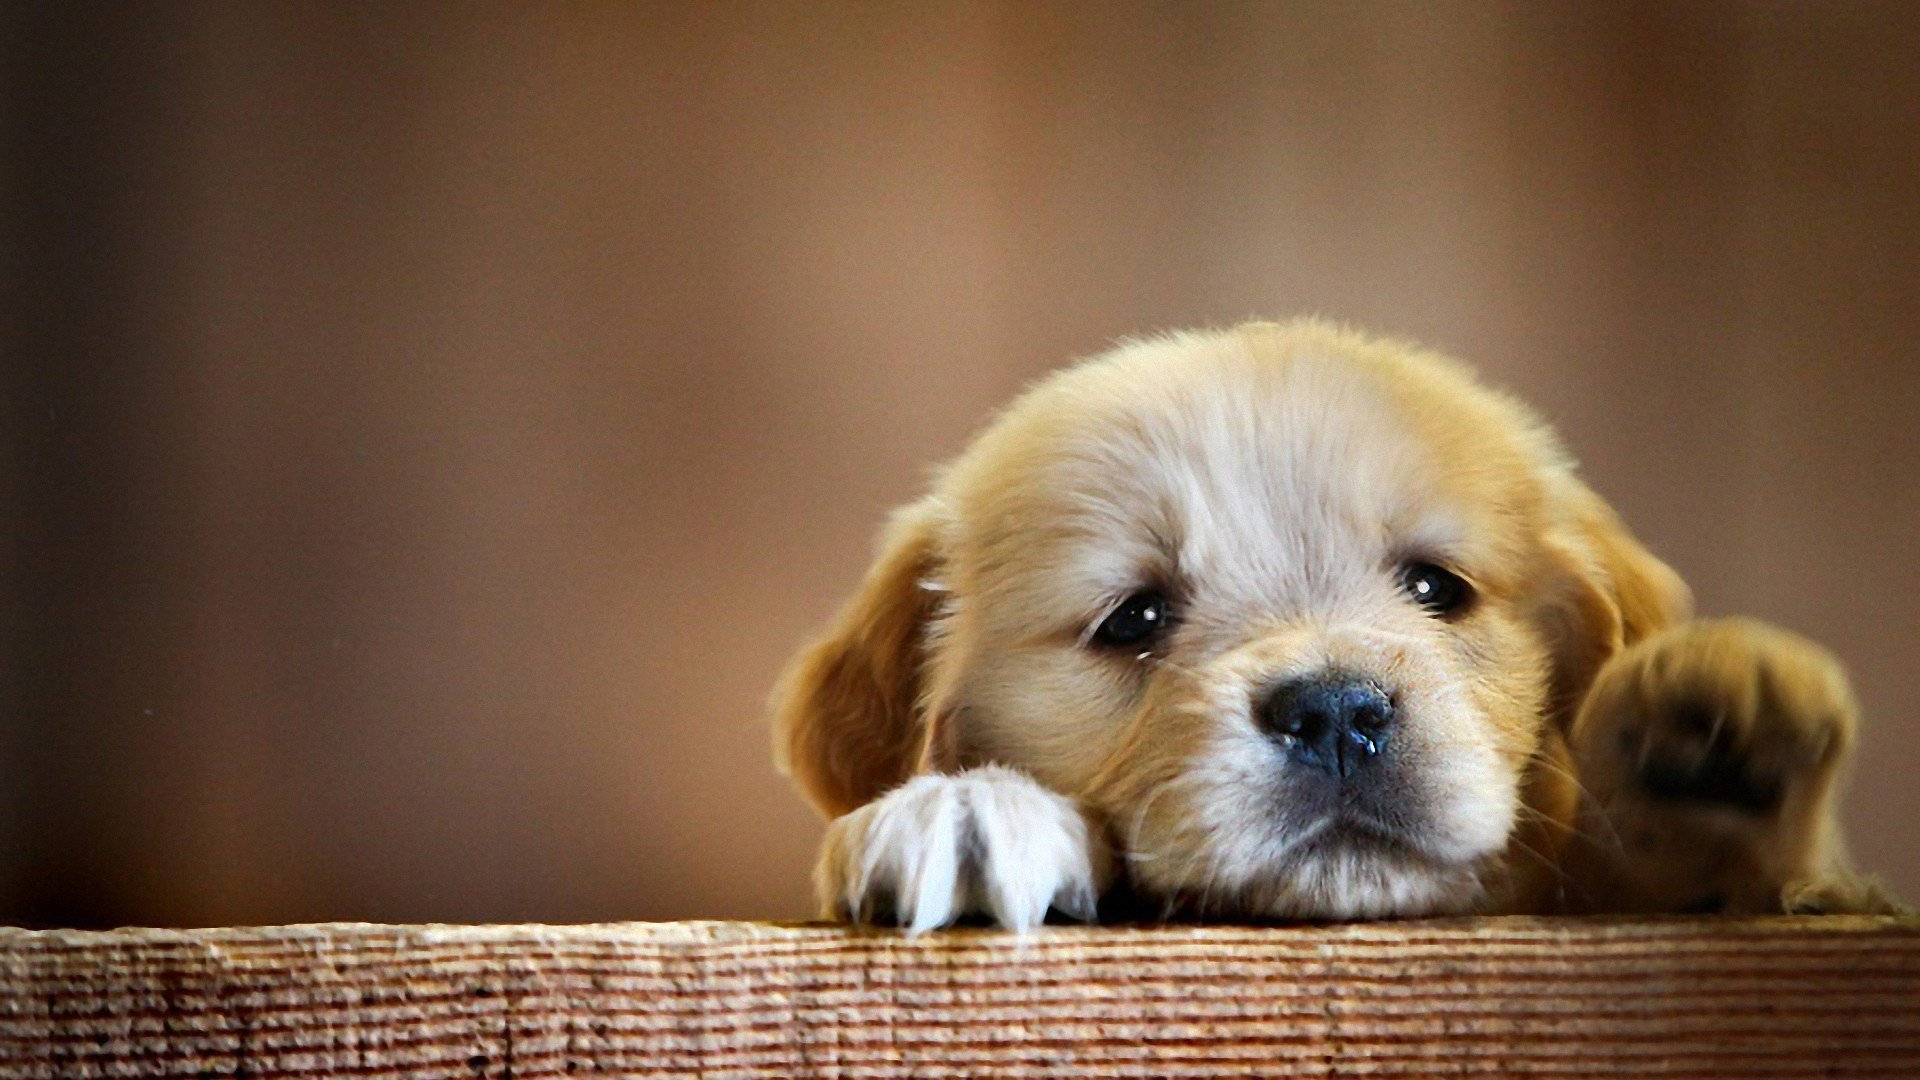 cute baby dog wallpaper (11 wallpapers) – hd wallpapers